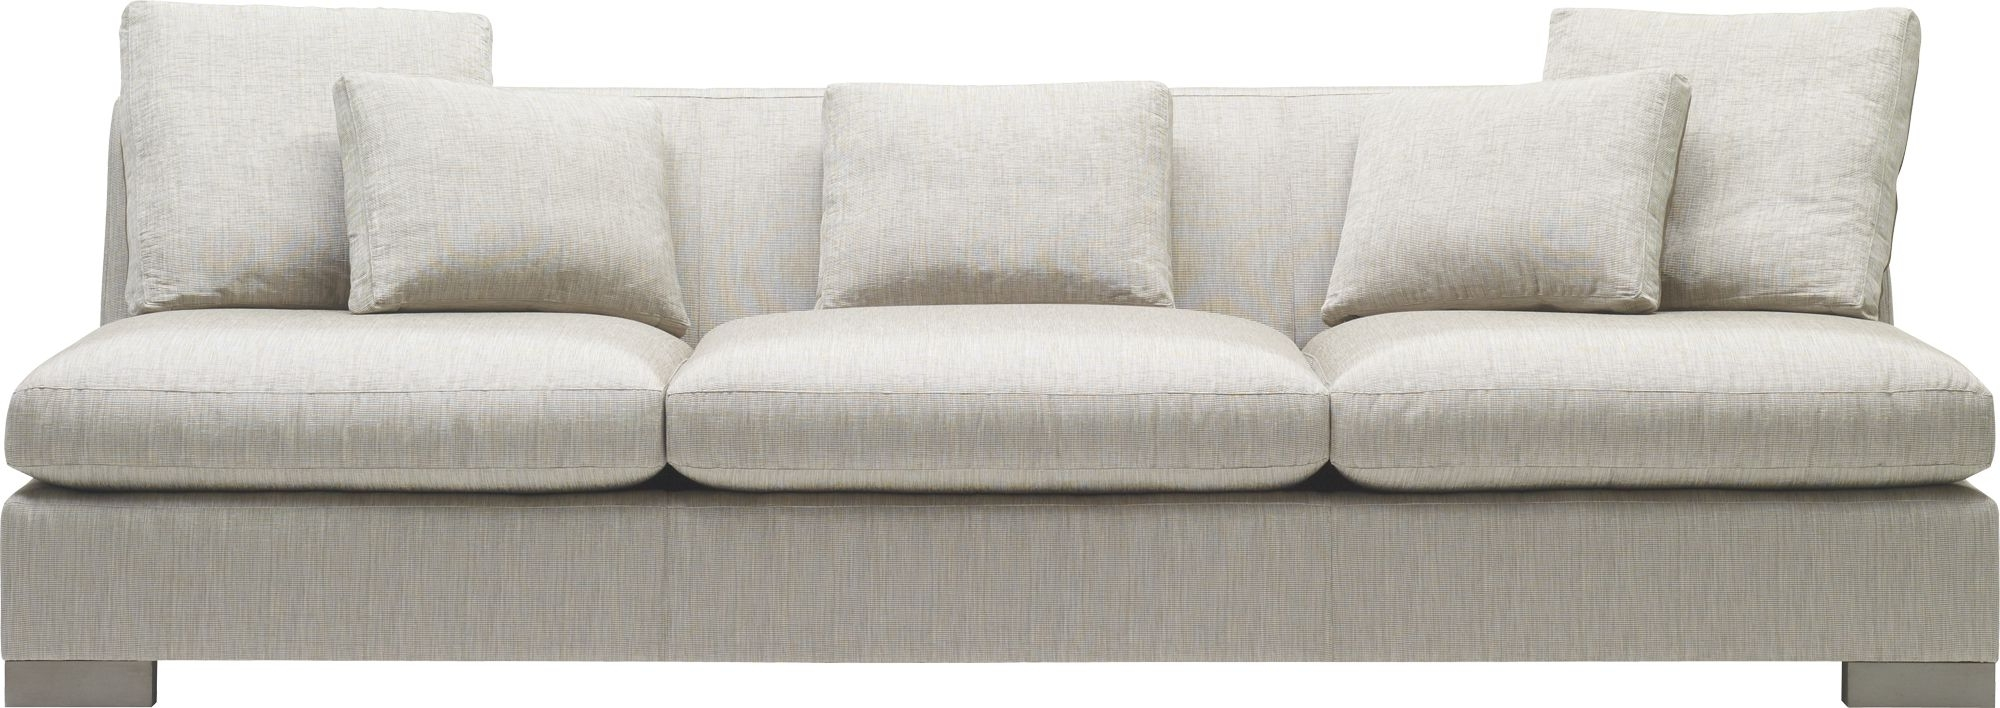 Current Small Armless Sofas Throughout Furniture: Small Armless Sectional Sofa (View 1 of 20)